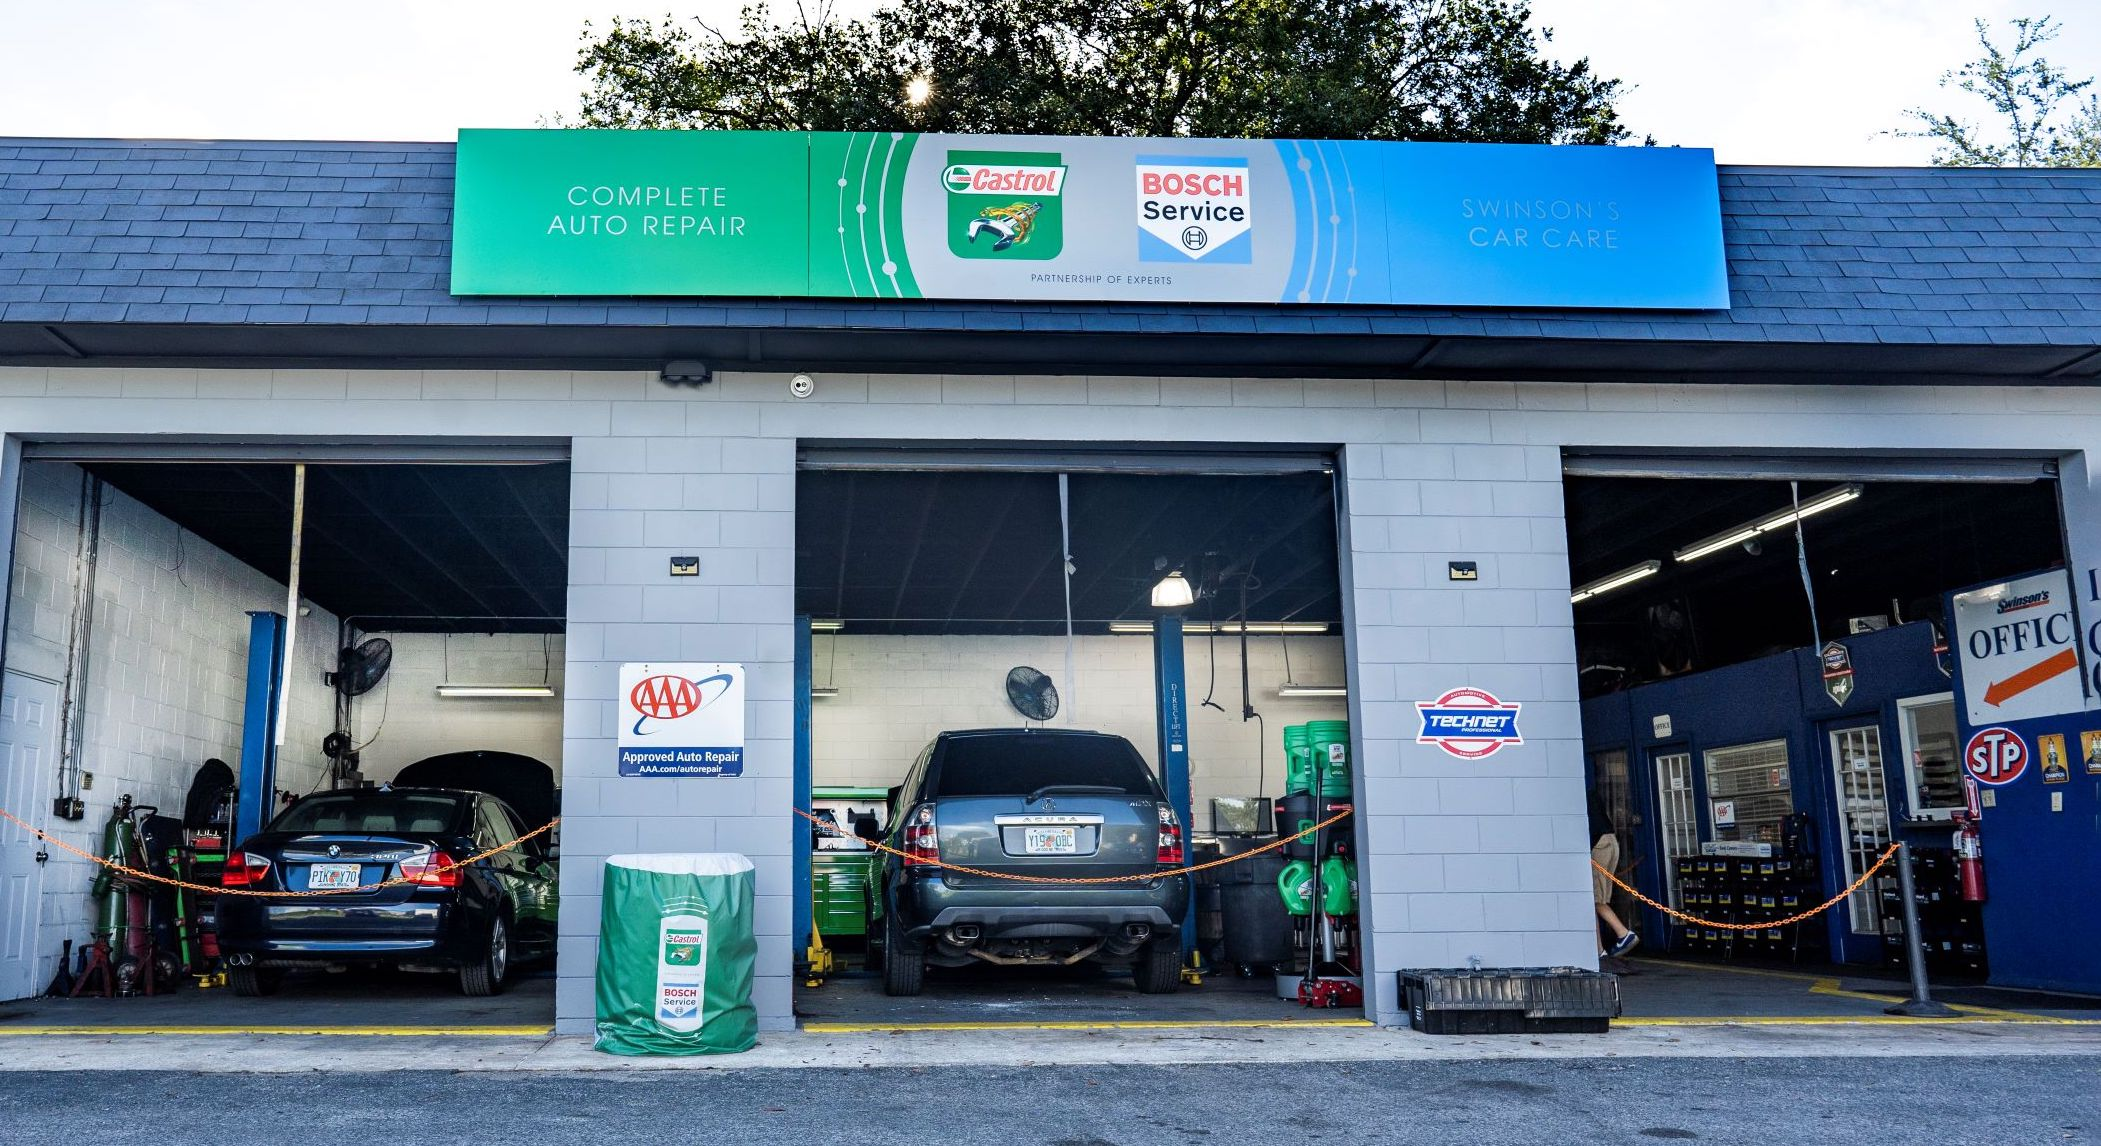 castrol bosch joint-branded auto shop